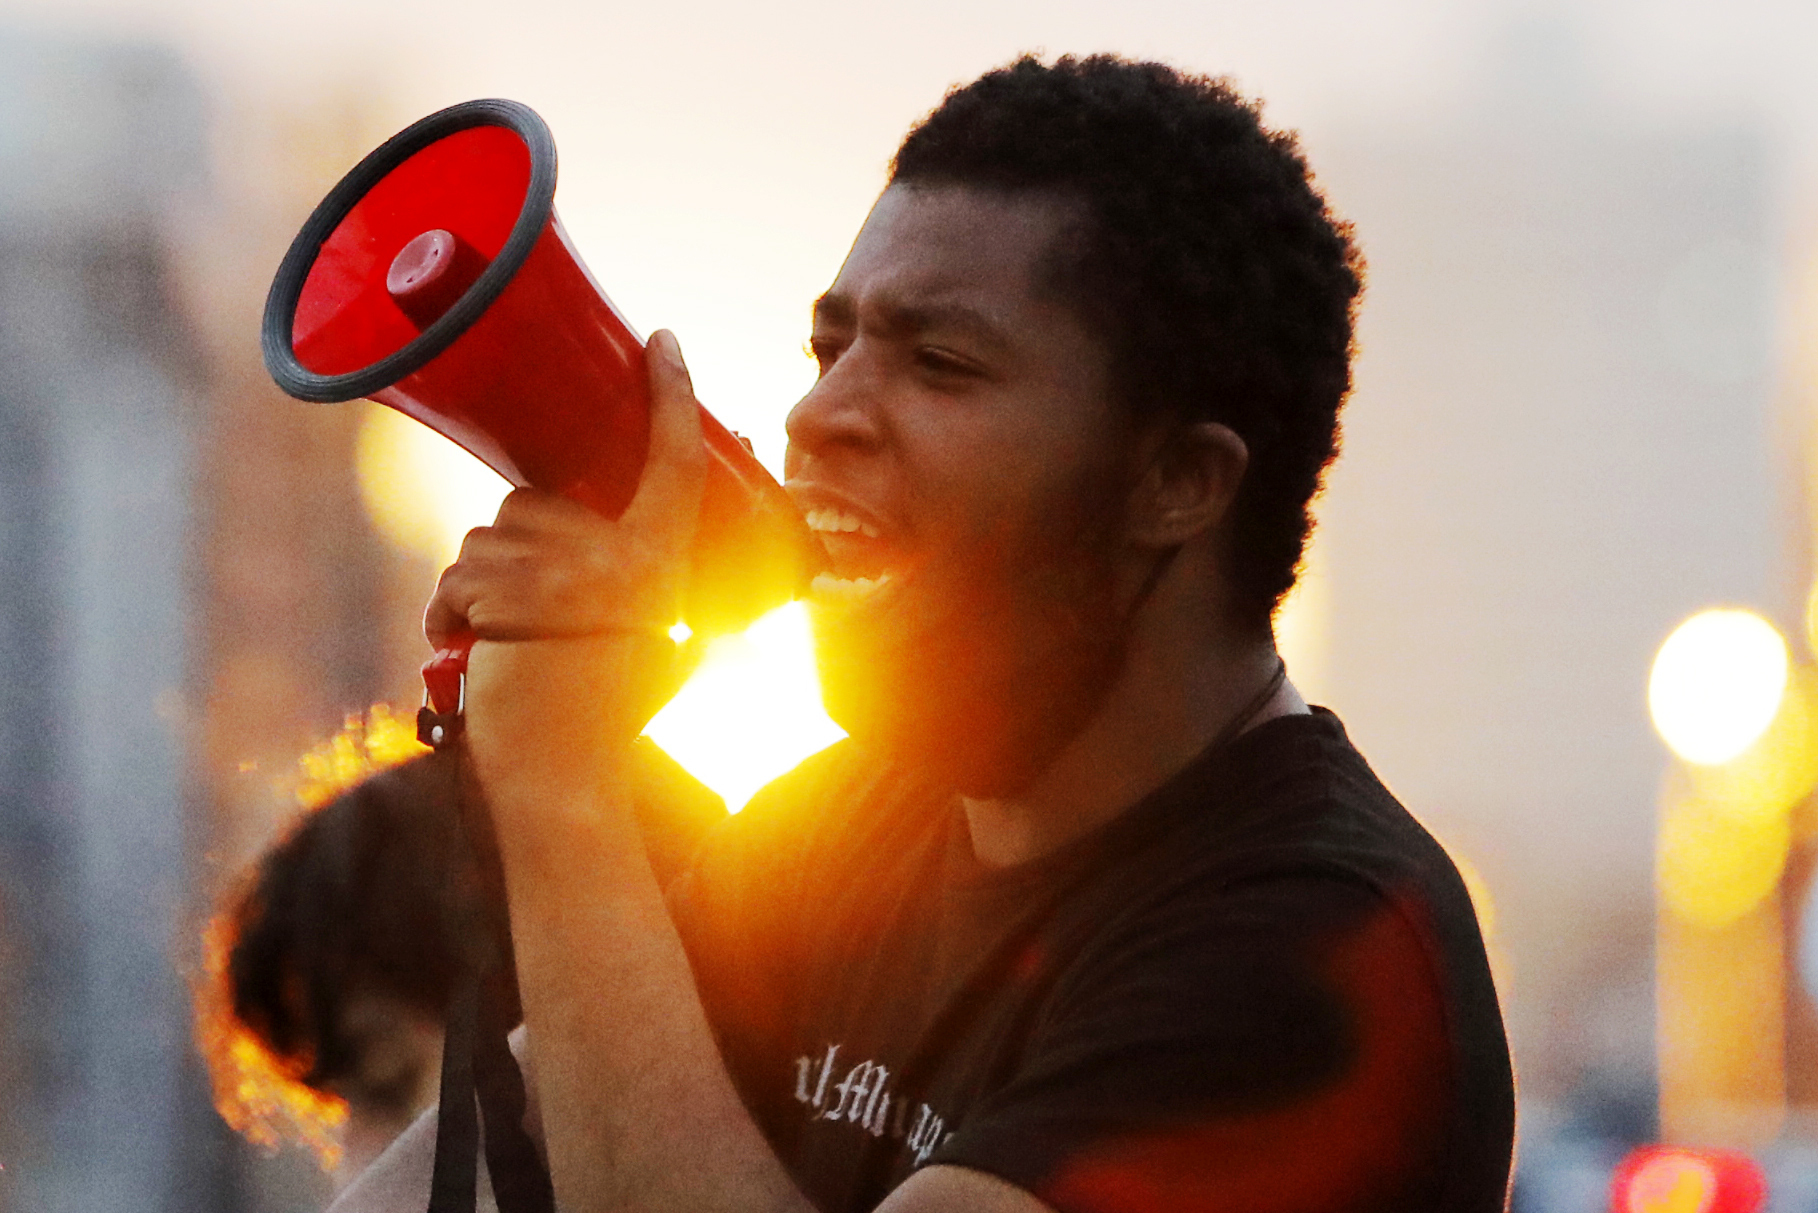 A protest leader chants with demonstrators Sunday, May 31, 2020, after curfew in Minneapolis. Protests continued following the death of George Floyd, who died after being restrained by Minneapolis police officers on Memorial Day. (AP Photo/Julio Cortez)